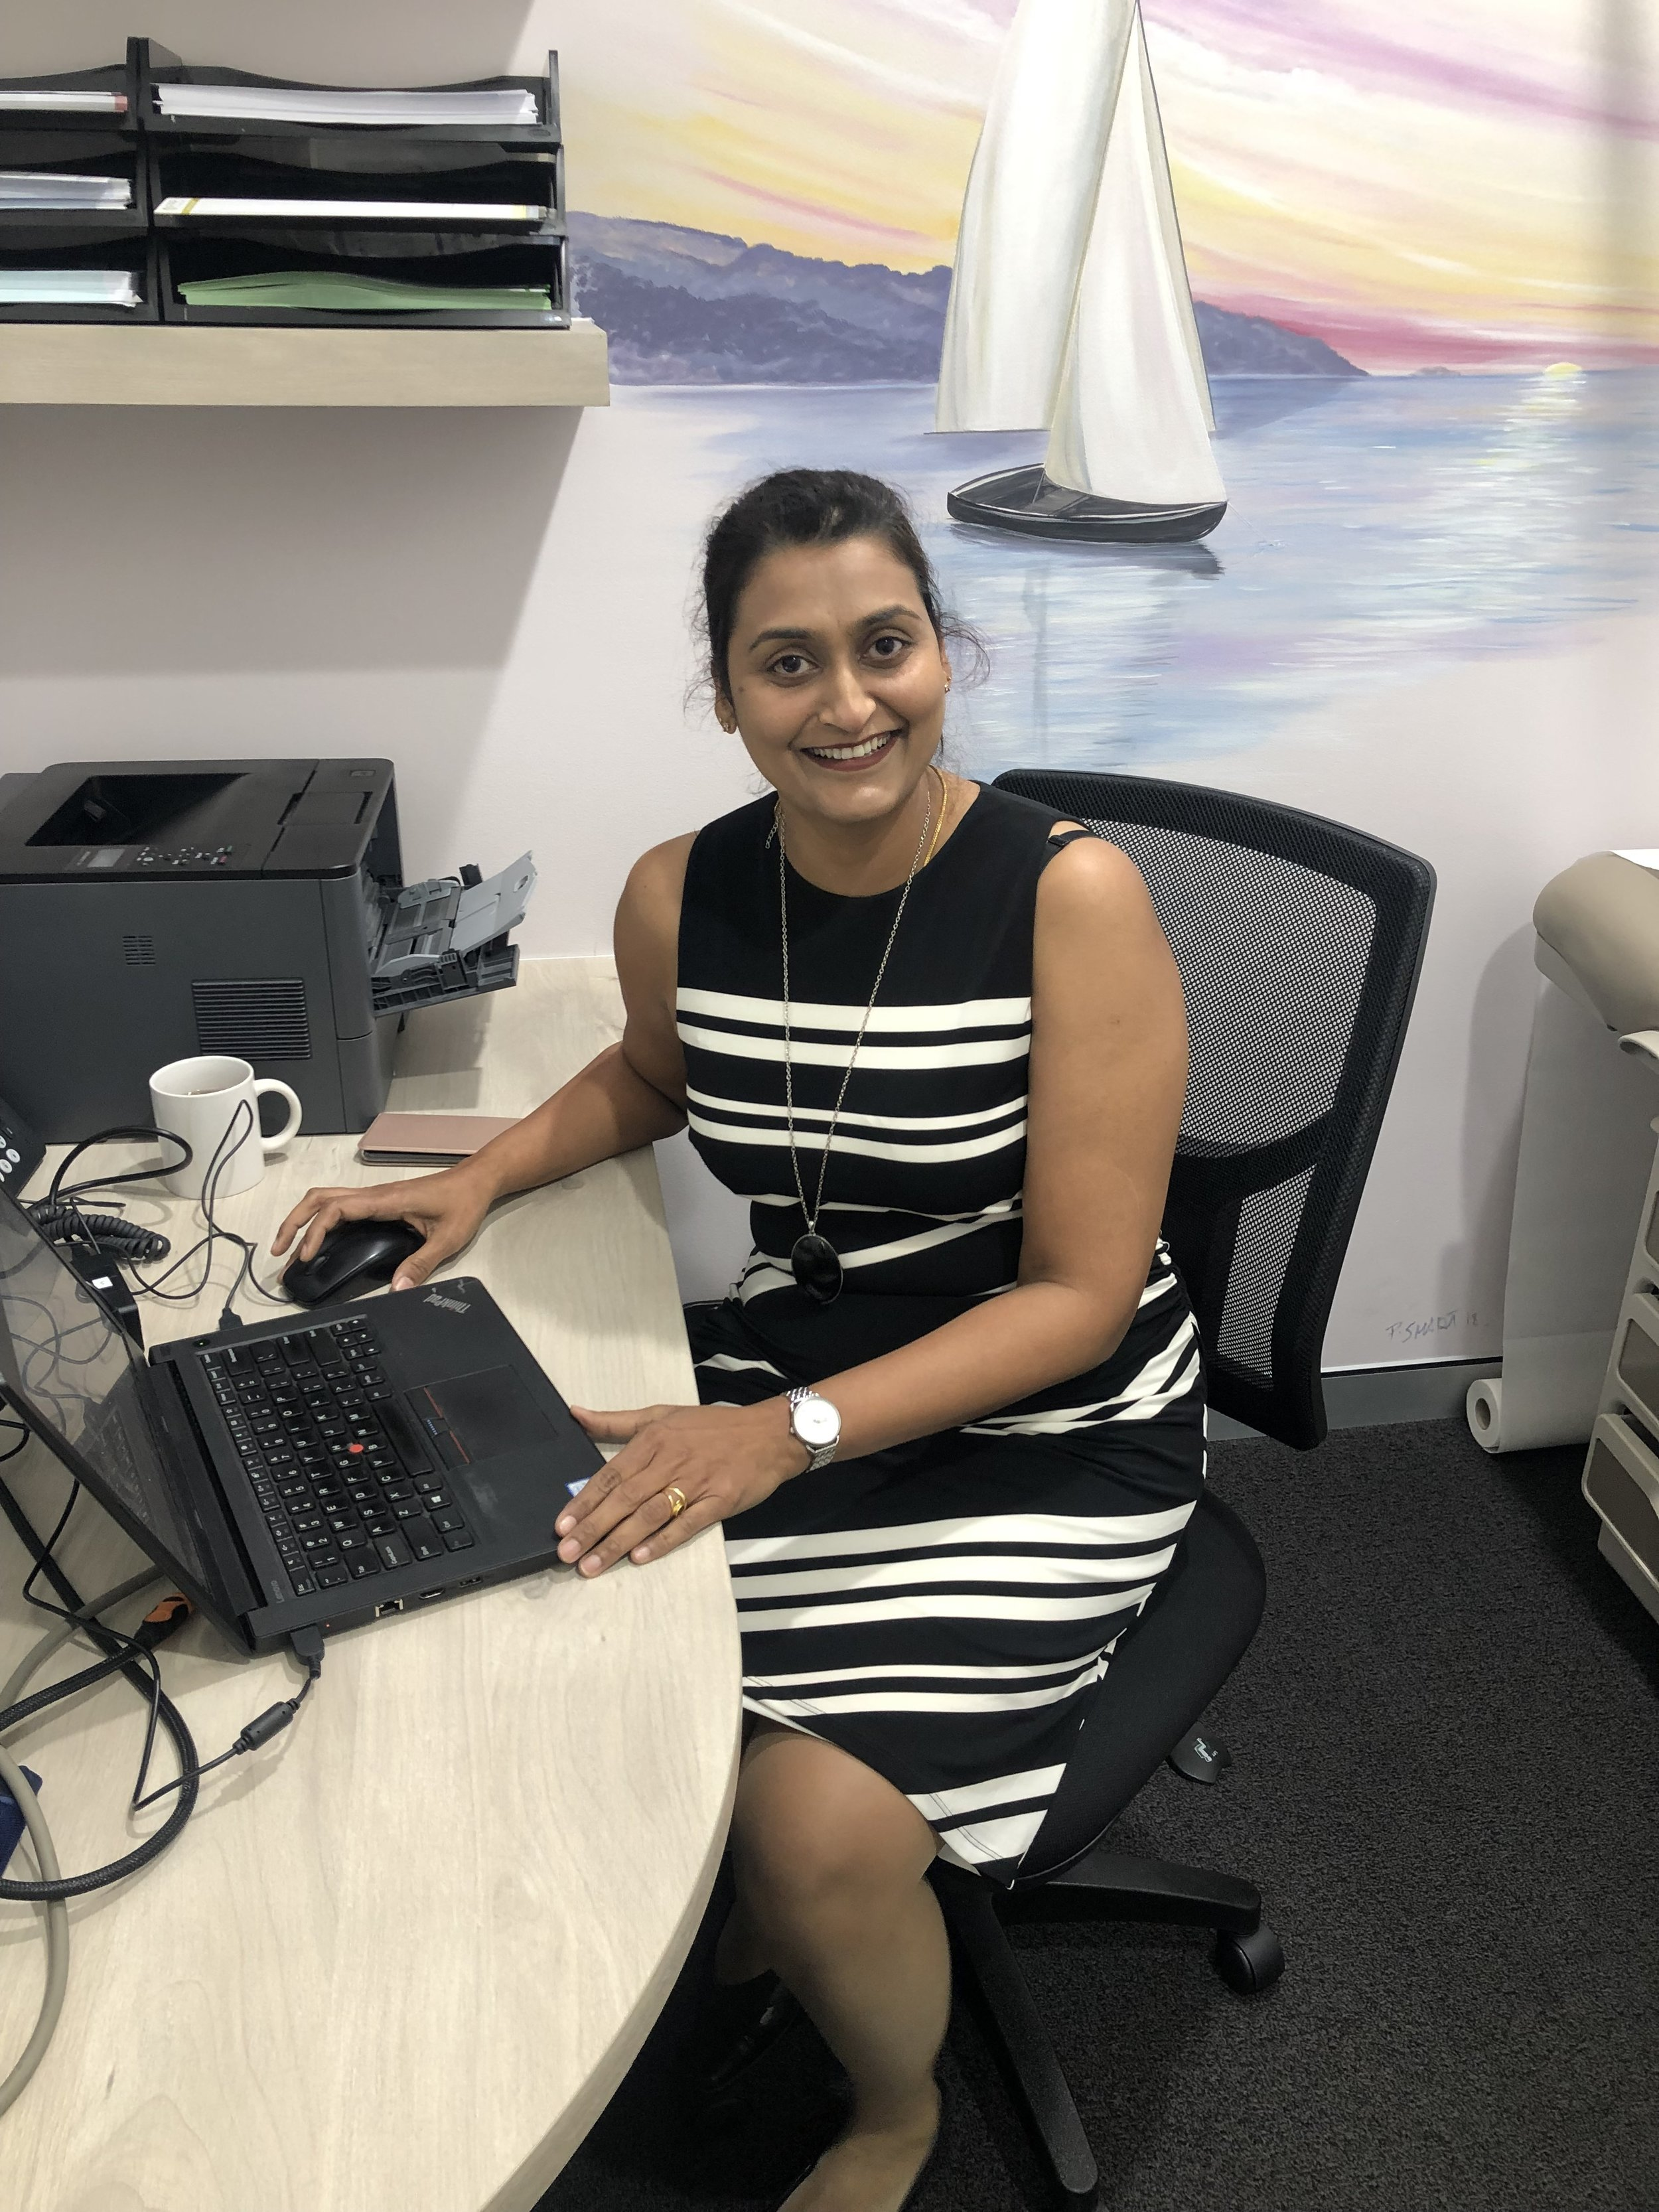 Dr Diana Rajan - M.B.B.S FRACGPDr Rajan commenced working at Hills Family Practice in July 2013. Prior to that she has gained experience at Hornsby Hospital GP, Alpha Medical Centre and Astley Medical Centre. Dr Rajan completed her fellowship exams with the Royal Australian College of General Practitioners. As of 2017, she has taken on an extra role as a Clinical Editor with Health Pathways which is an online clinical and referral tool for General Practitioners in Western Sydney. She loves the variety General Practice has to offer, and has a keen interest in Paediatrics and in looking after the health needs of families. She does antenatal shared care with the hospital in Western Sydney.